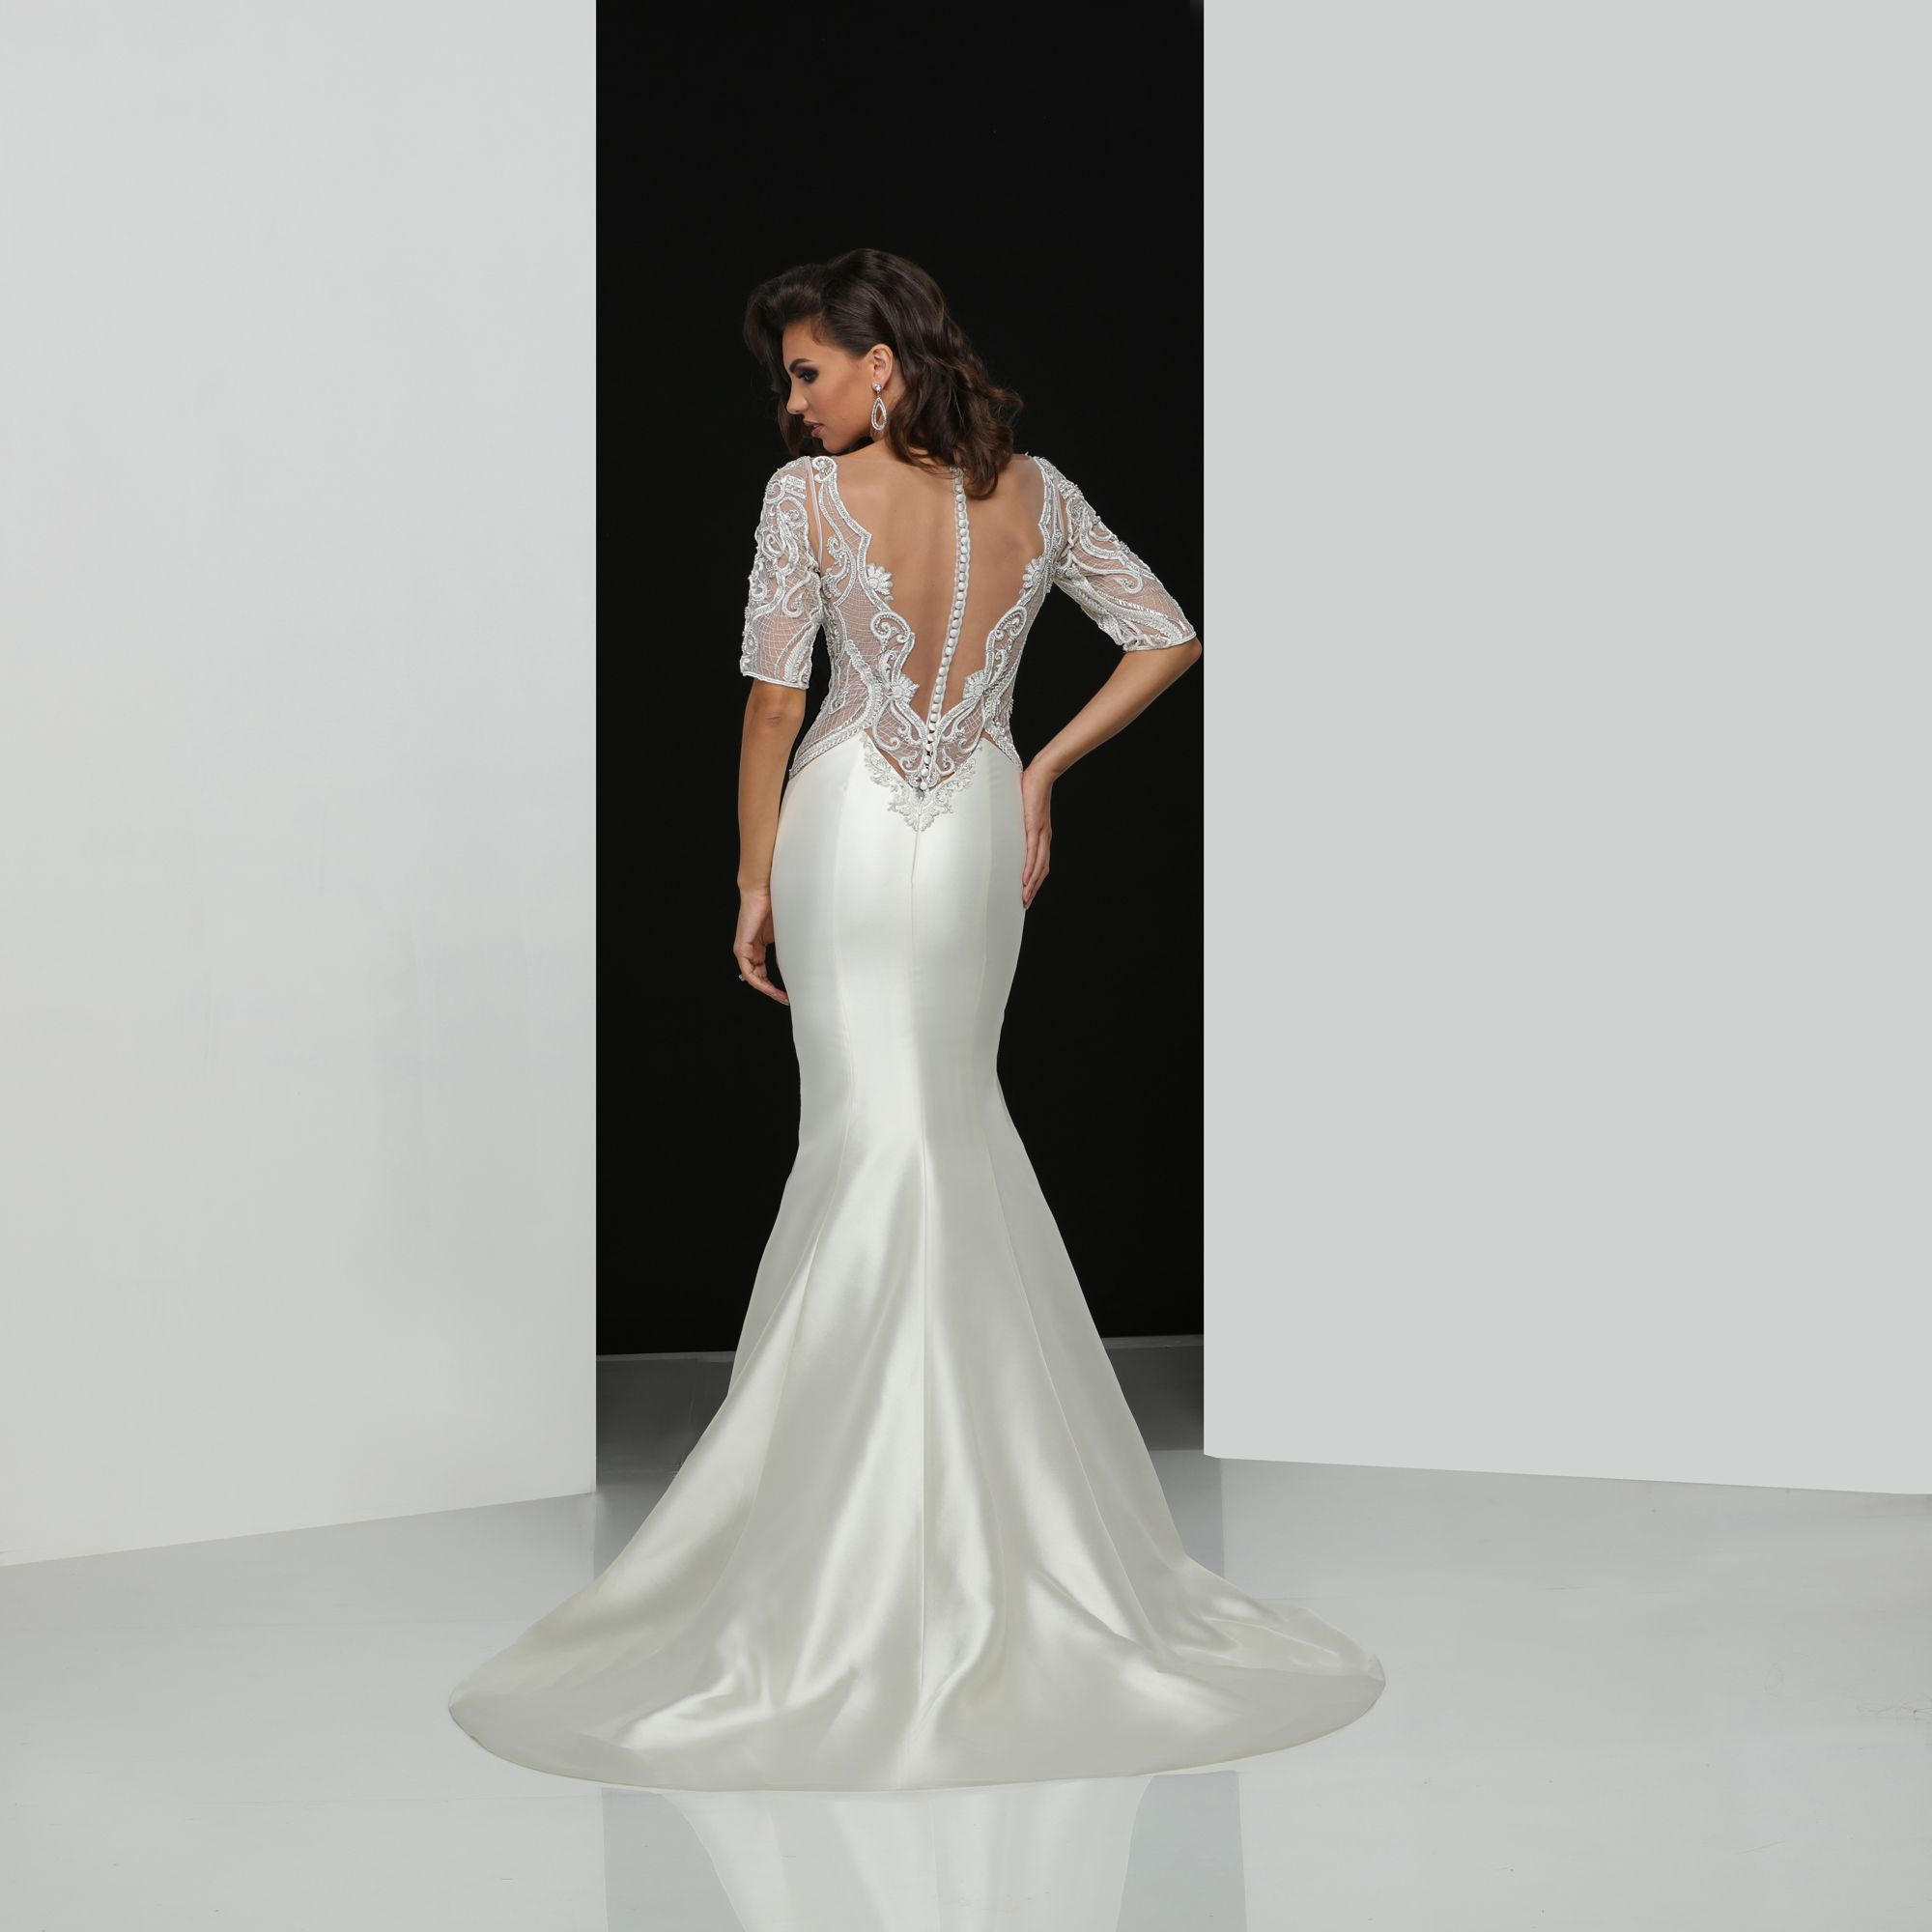 Simone Carvalli Bridal Gown And Wedding Dress Collection